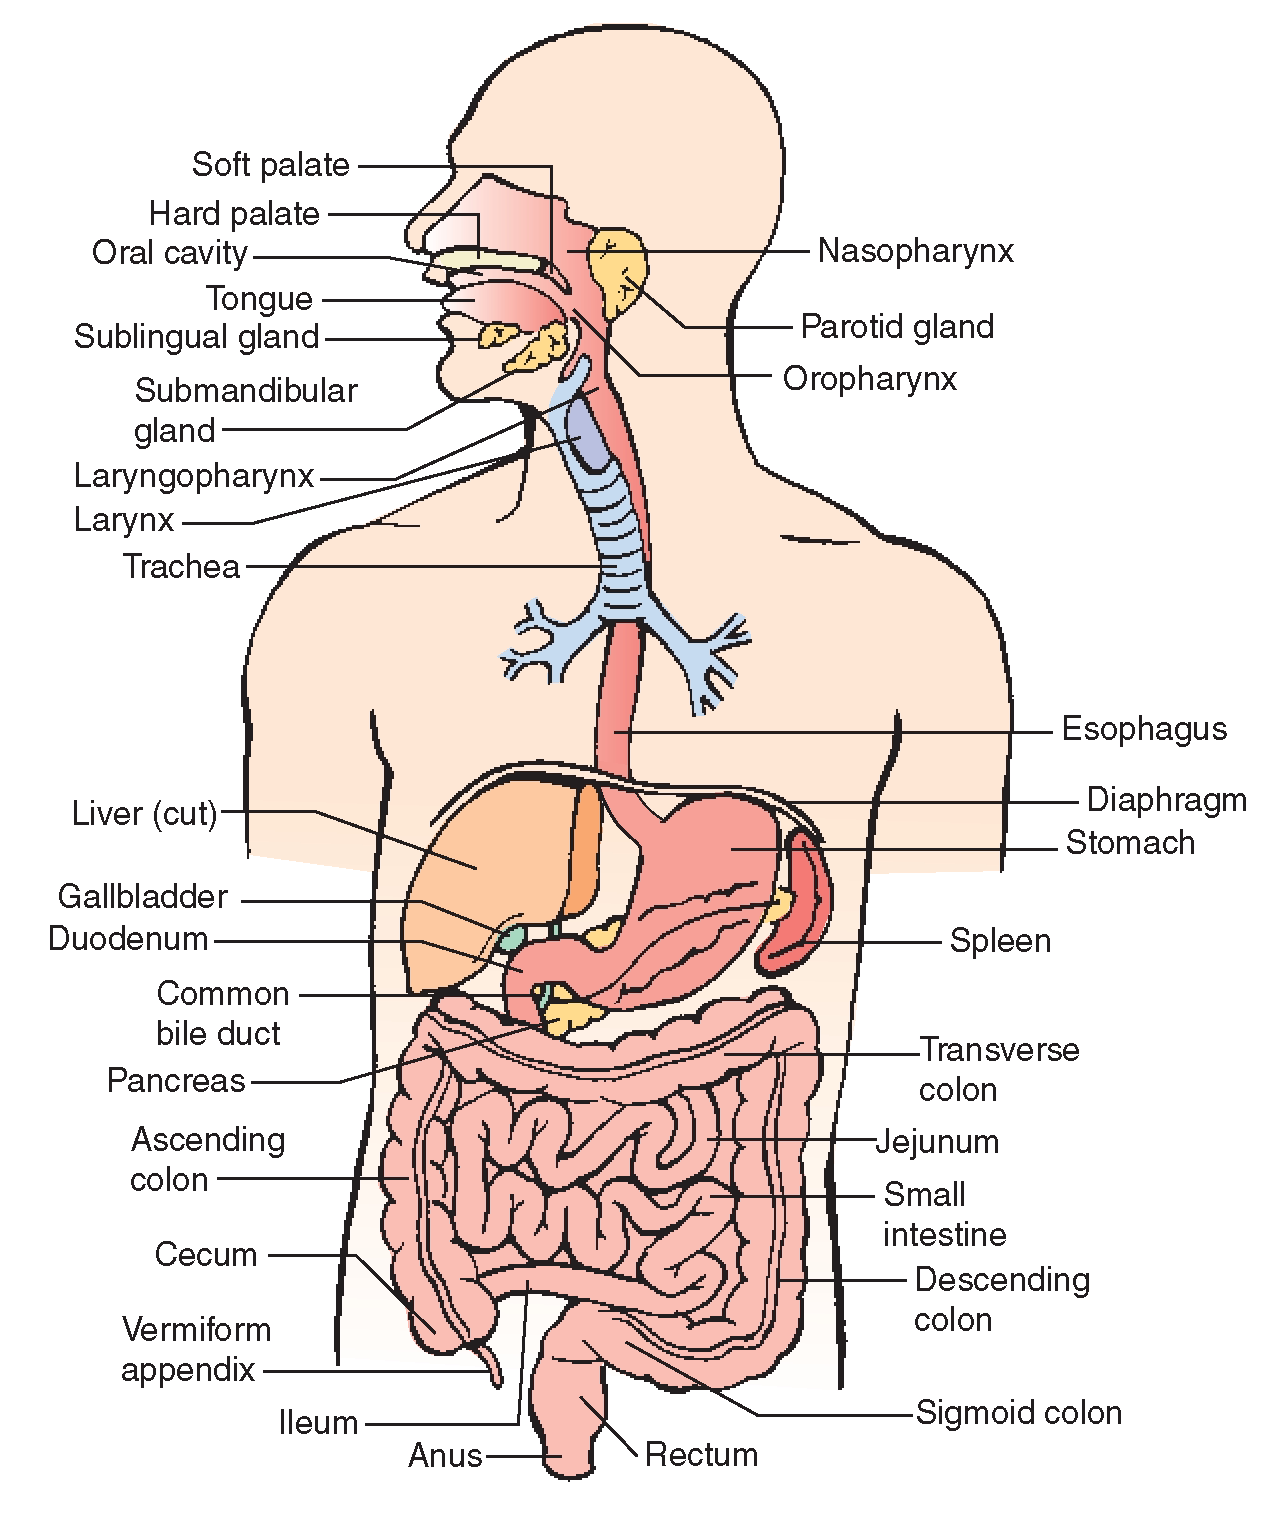 a picture labeling all the parts in the digestive system [ 1265 x 1514 Pixel ]